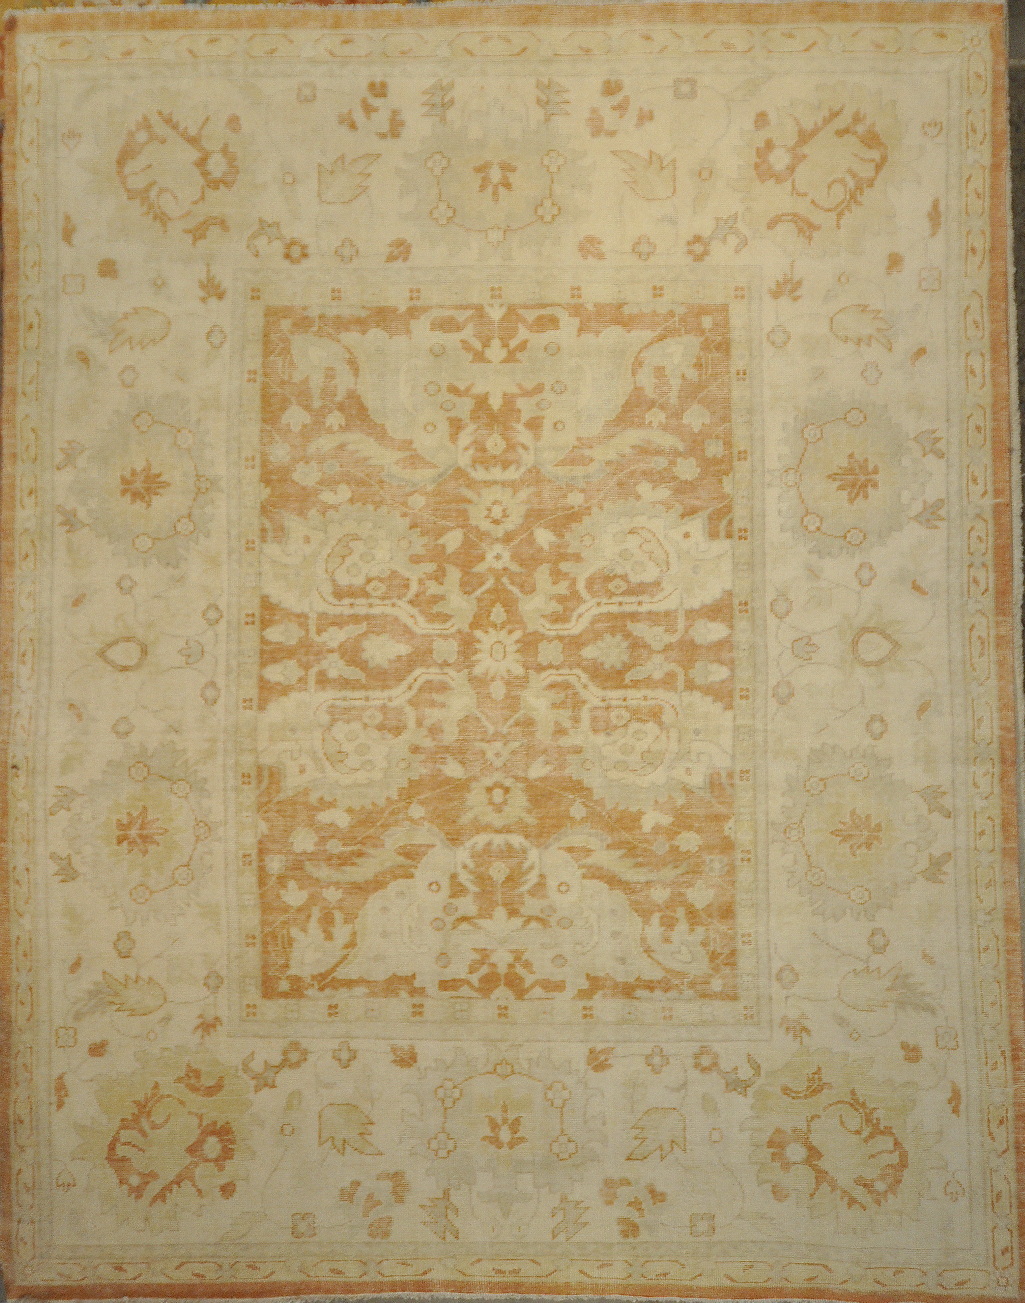 Fine-Montecito-Usak-rug-santa-barbara-design-center-44425